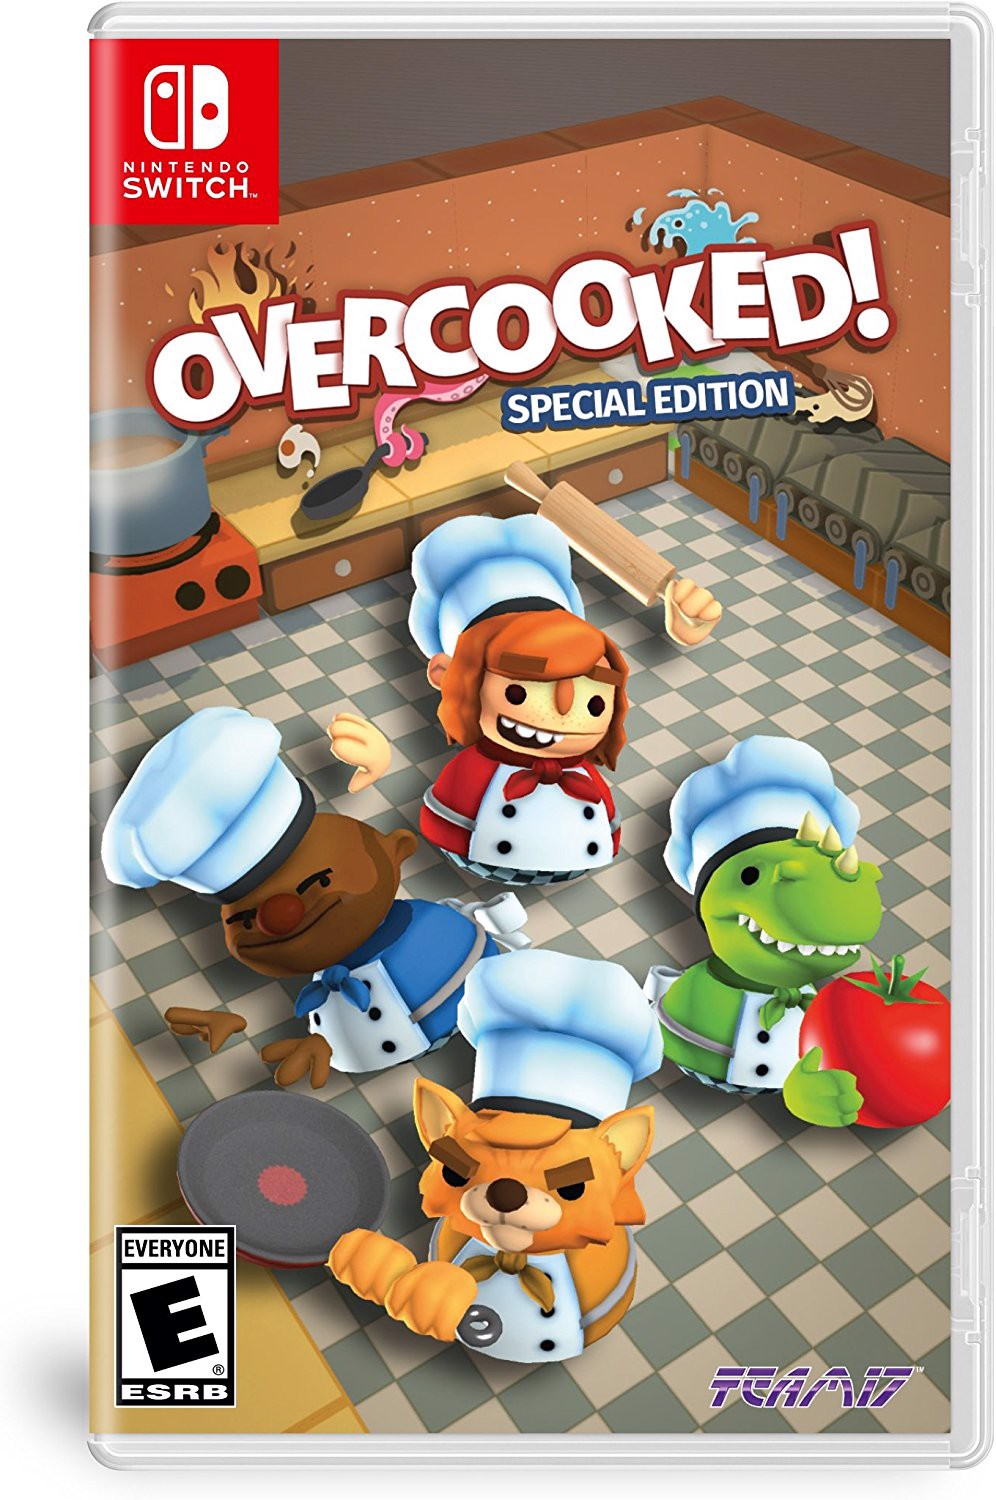 076 - Overcooked! Special Edition